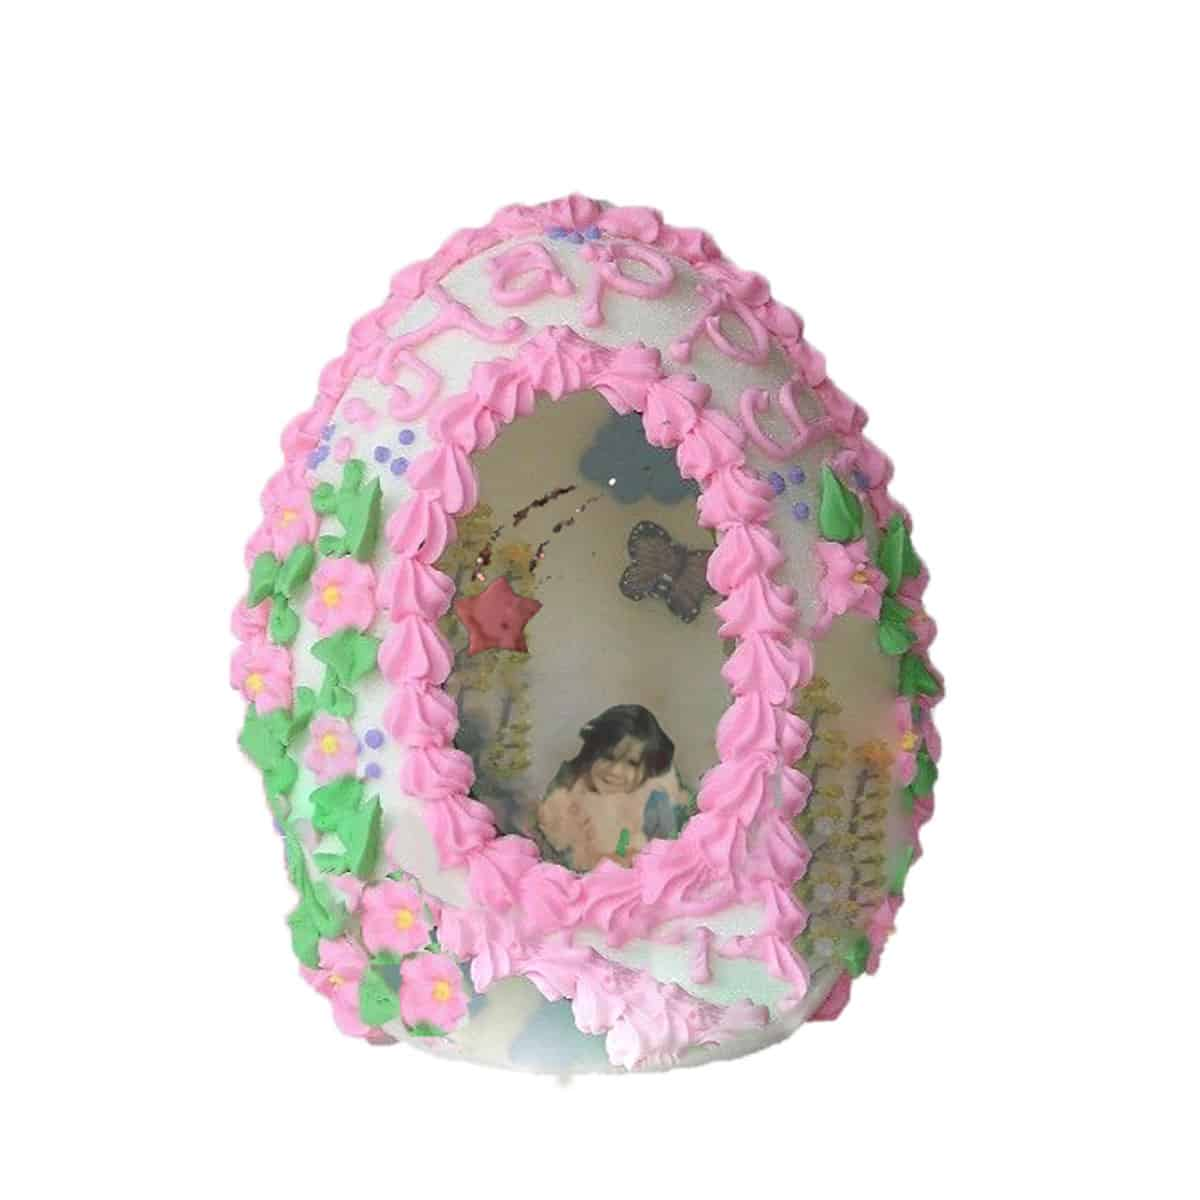 digital collage of sugar easter egg with photograph inside.